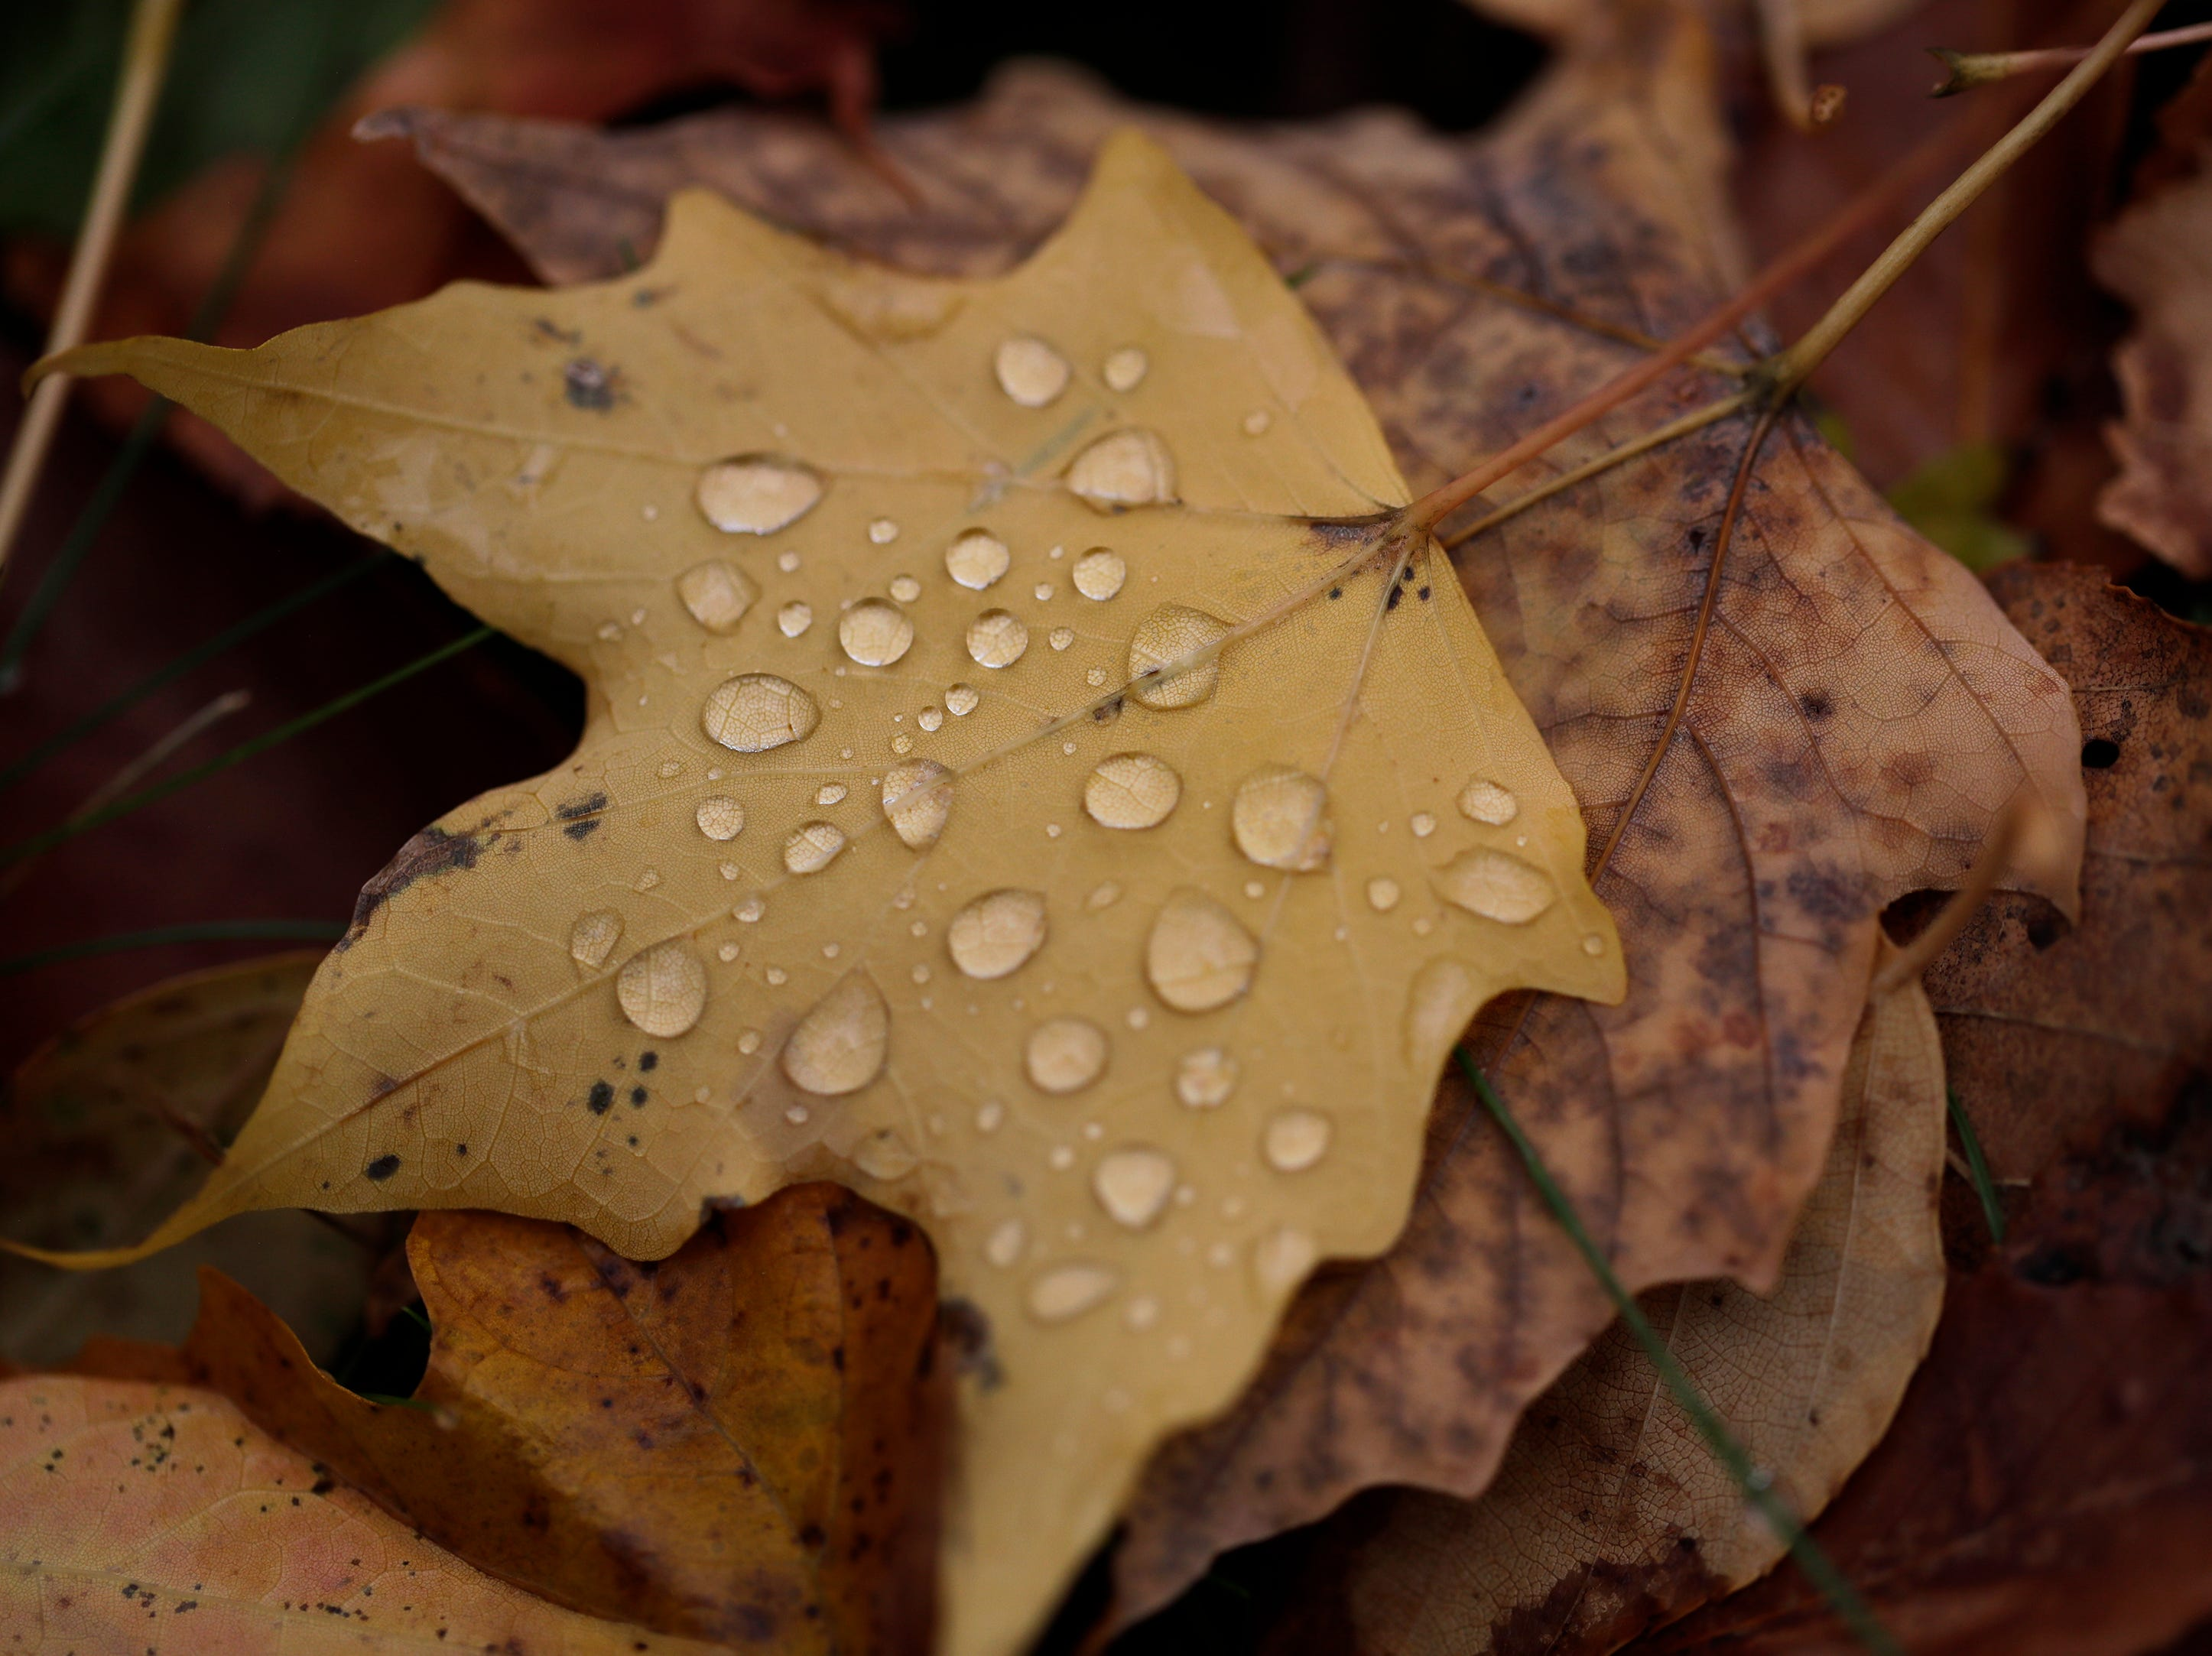 Dew drops cover a fallen leaf Monday, October 29, 2018, at Plamann Park in Appleton, Wis. 